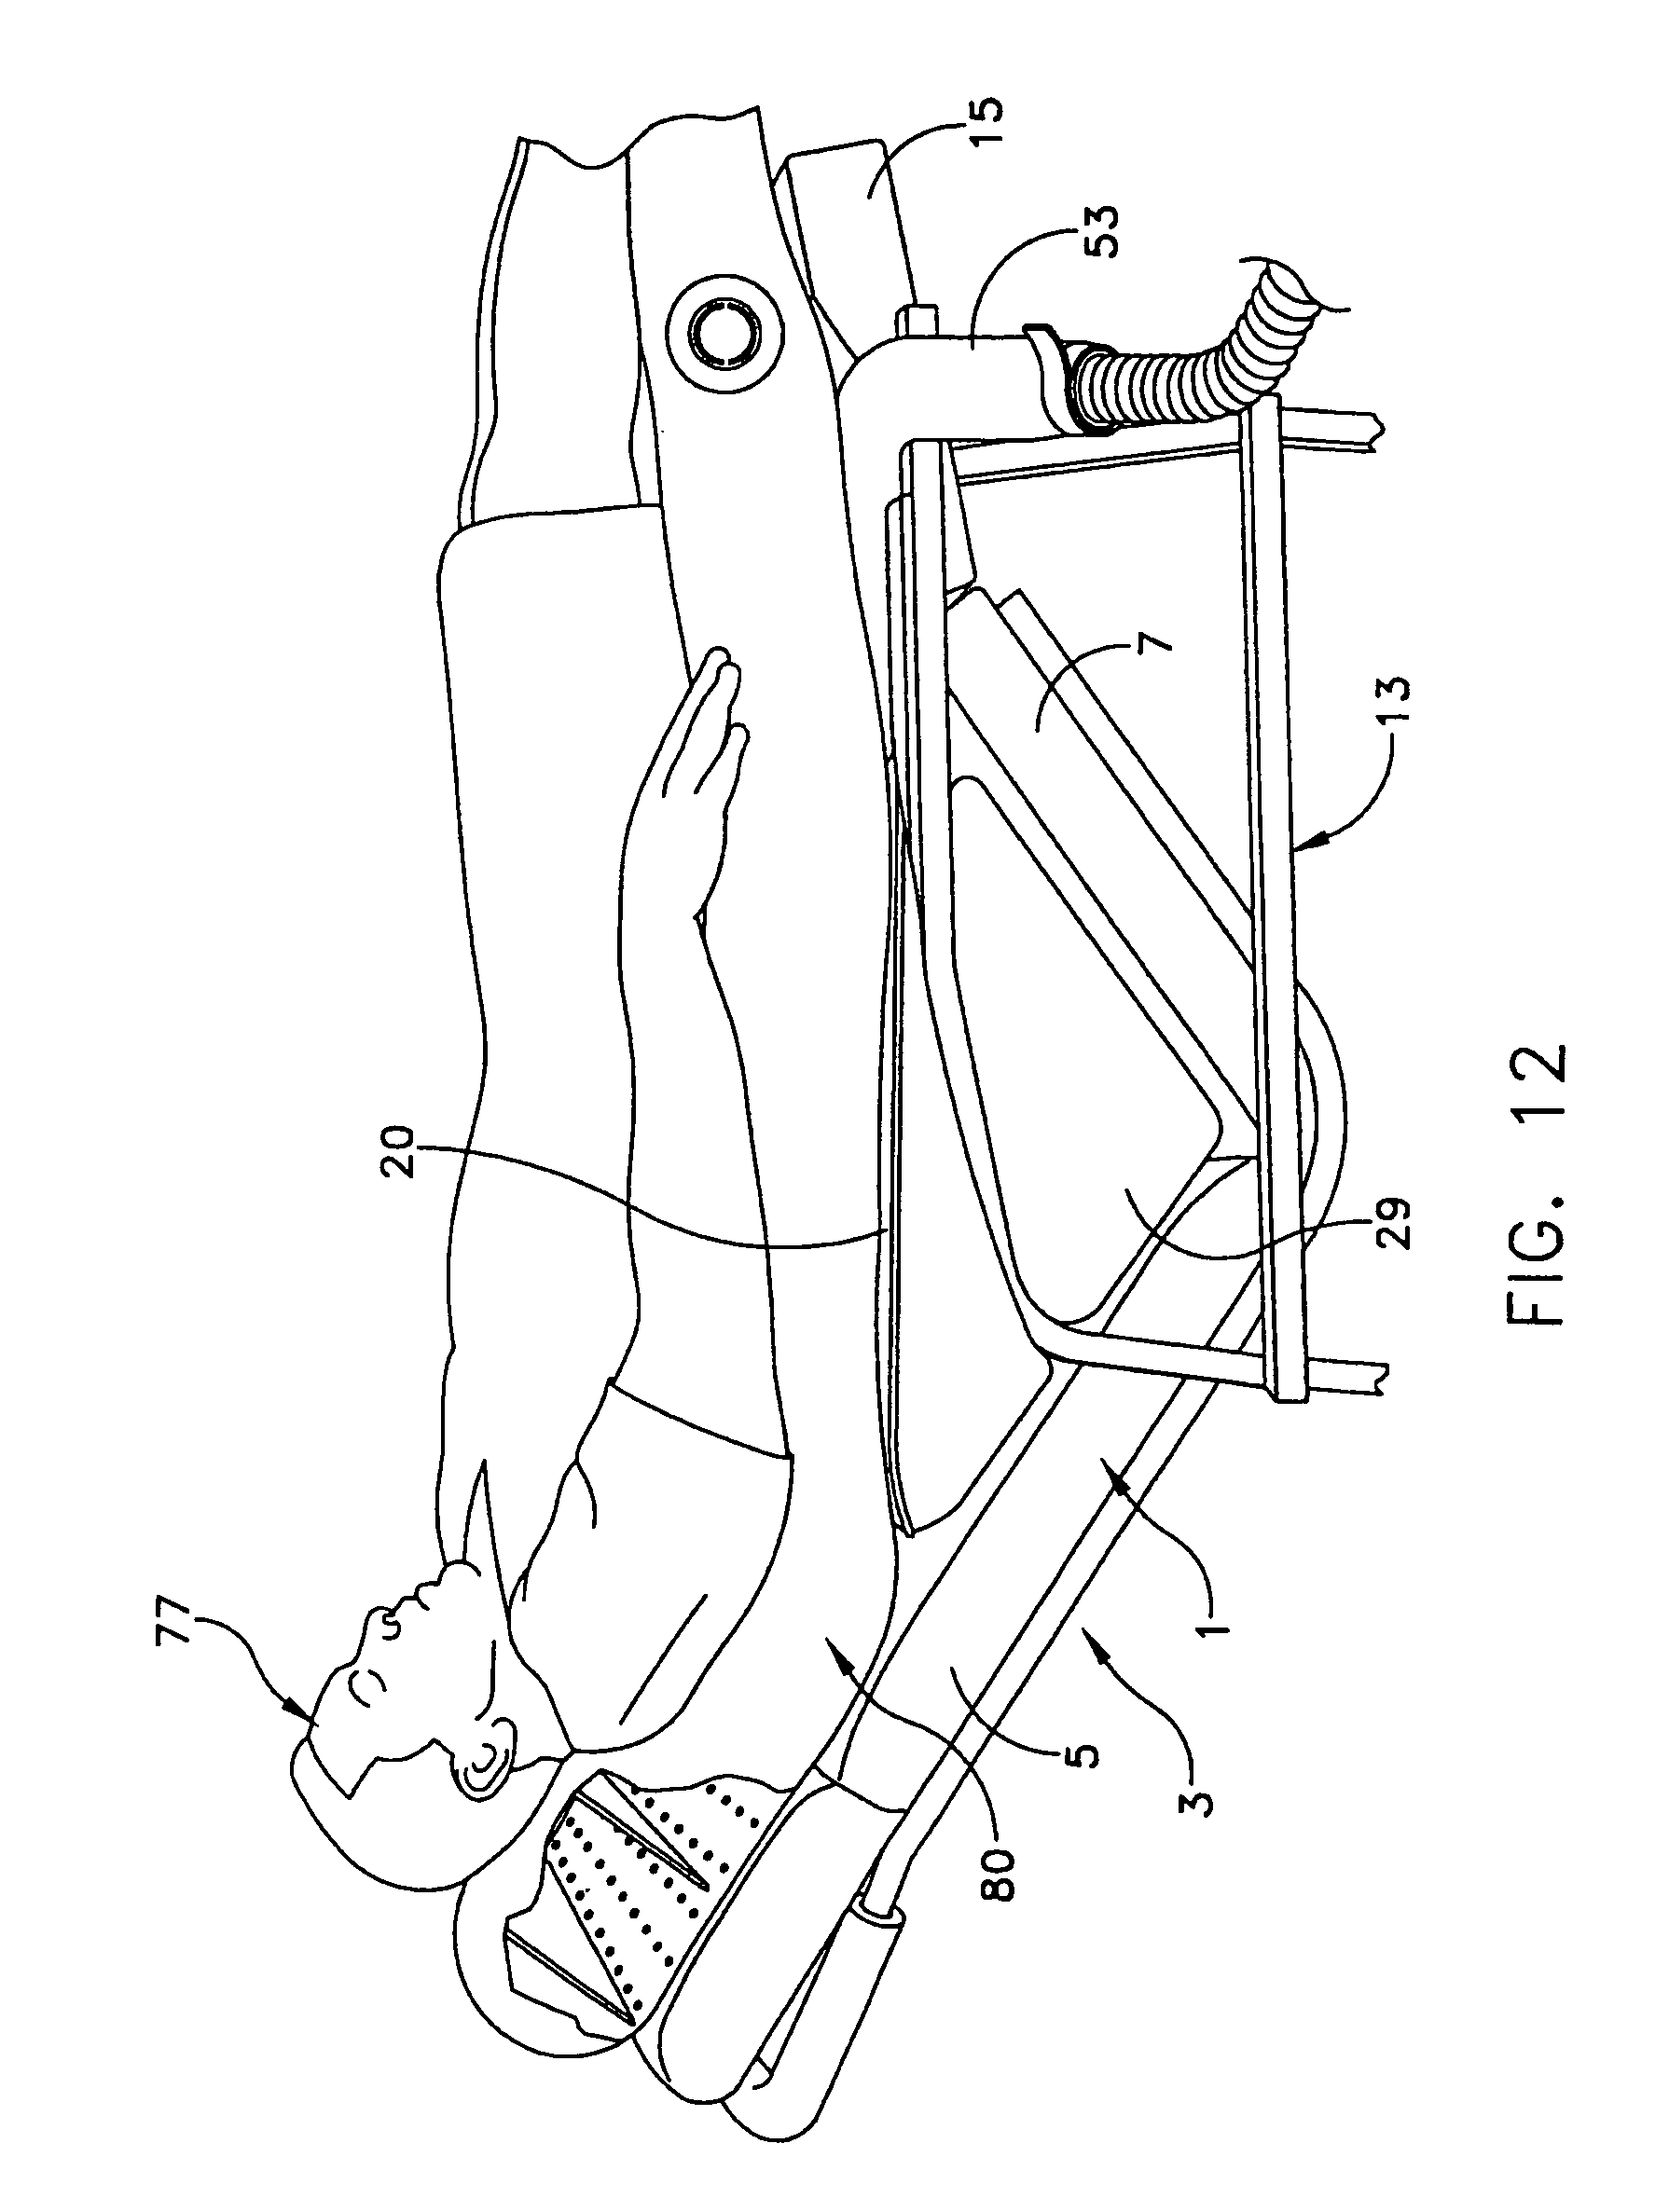 inflatable lifting chair leather arm chairs patent us7168115 cushion and method for